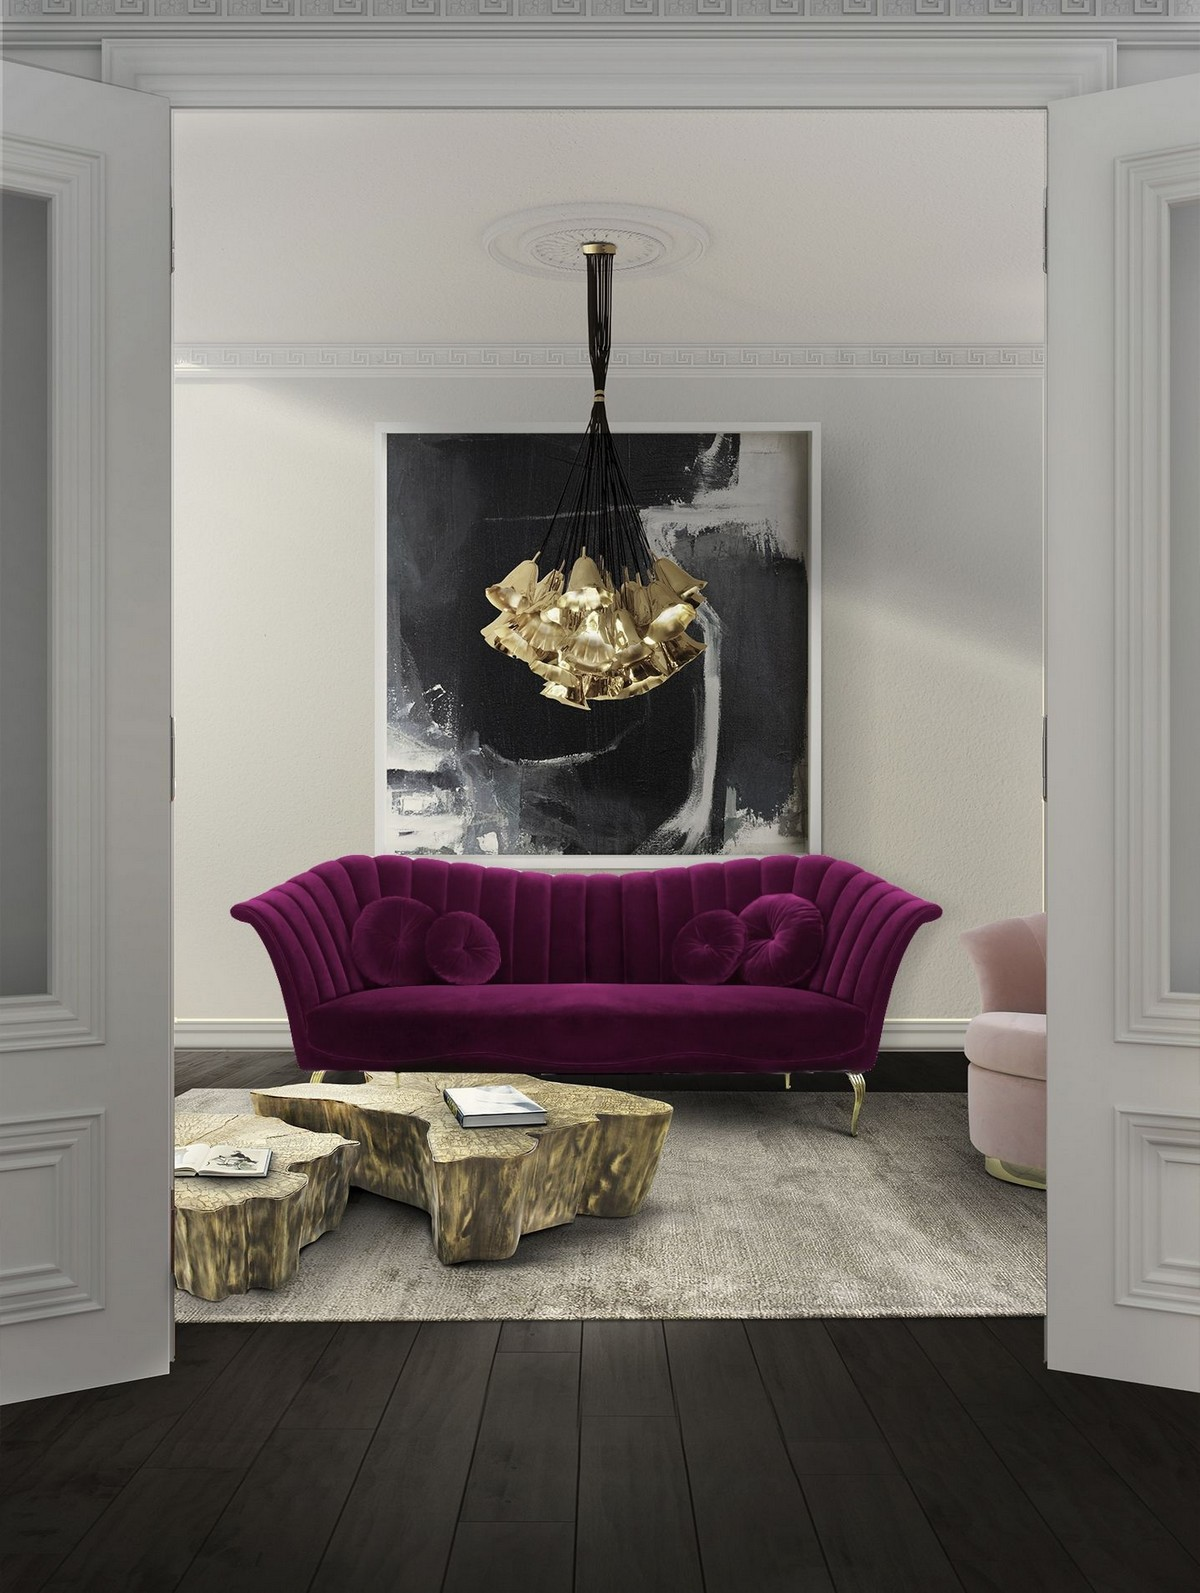 Exclusive Lighting Designs You Will Love (Part II) exclusive lighting designs Exclusive Lighting Designs You Will Love (Part II) gia chandelier2